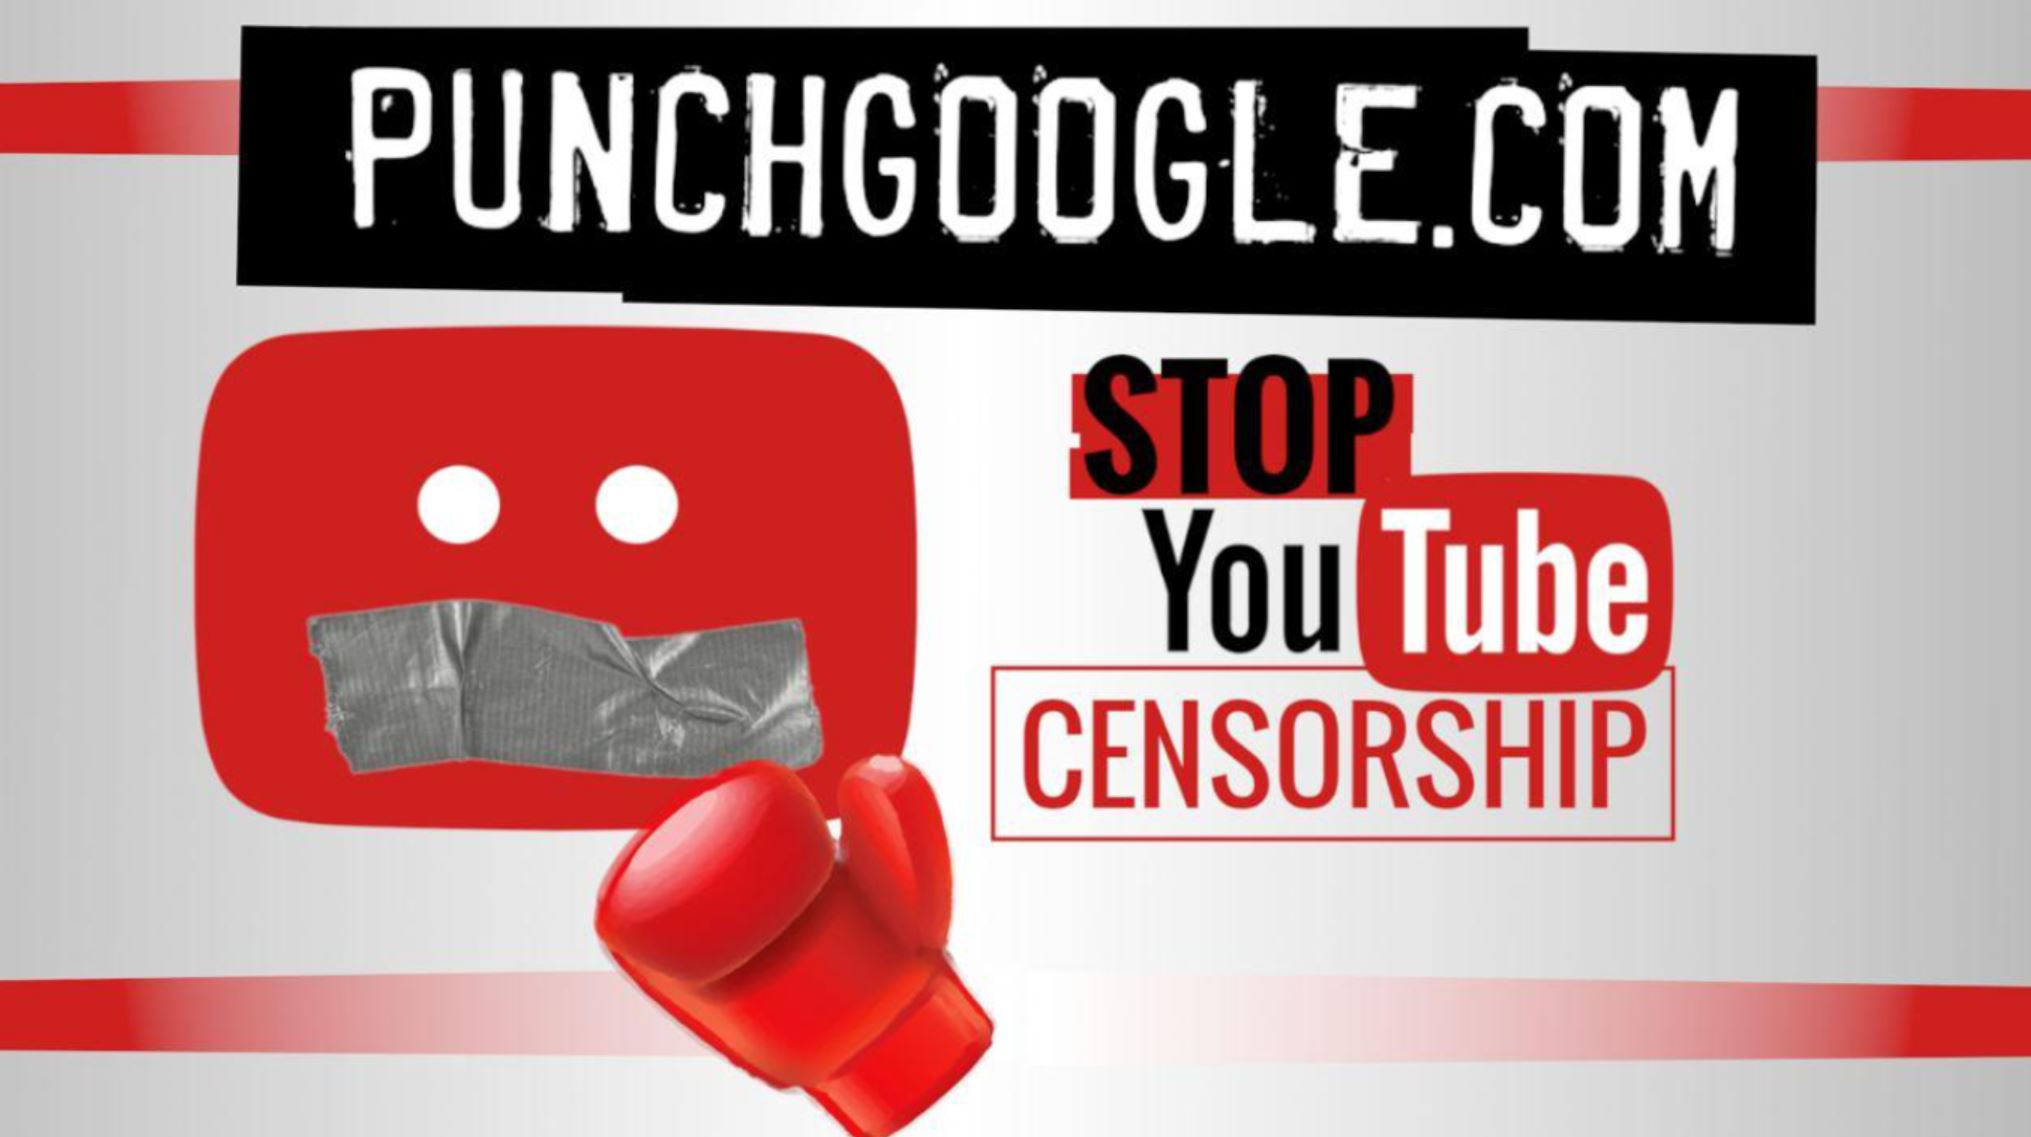 Google Whistleblower & Conservative Influencers File Lawsuit To Punch Google & Restore Free Speech